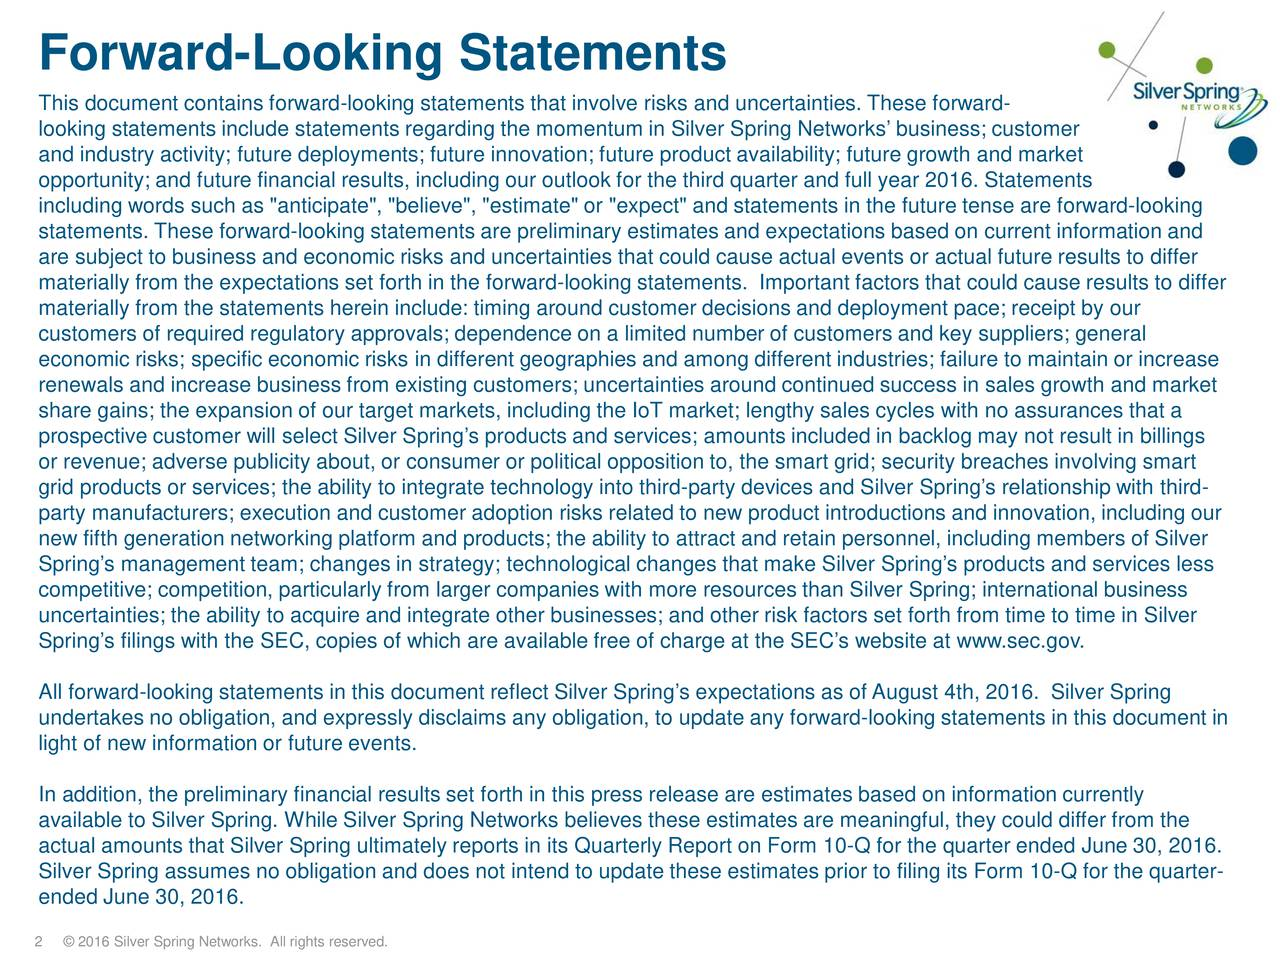 """This document contains forward-looking statements that involve risks and uncertainties. These forward- looking statements include statements regarding the momentum in Silver Spring Networks business; customer and industry activity; future deployments; future innovation; future product availability; future growth and market opportunity; and future financial results, including our outlook for the third quarter and full year 2016. Statements including words such as """"anticipate"""", """"believe"""", """"estimate"""" or """"expect"""" and statements in the future tense are forward-looking statements. These forward-looking statements are preliminary estimates and expectations based on current information and are subject to business and economic risks and uncertainties that could cause actual events or actual future results to differ materially from the expectations set forth in the forward-looking statements. Important factors that could cause results to differ materially from the statements herein include: timing around customer decisions and deployment pace; receipt by our customers of required regulatory approvals; dependence on a limited number of customers and key suppliers; general economic risks; specific economic risks in different geographies and among different industries; failure to maintain or increase renewals and increase business from existing customers; uncertainties around continued success in sales growth and market share gains; the expansion of our target markets, including the IoT market; lengthy sales cycles with no assurances that a prospective customer will select Silver Springs products and services; amounts included in backlog may not result in billings or revenue; adverse publicity about, or consumer or political opposition to, the smart grid; security breaches involving smar t grid products or services; the ability to integrate technology into third- party devices and Silver Springs relationship with third- party manufacturers; execution and customer adoption risks """